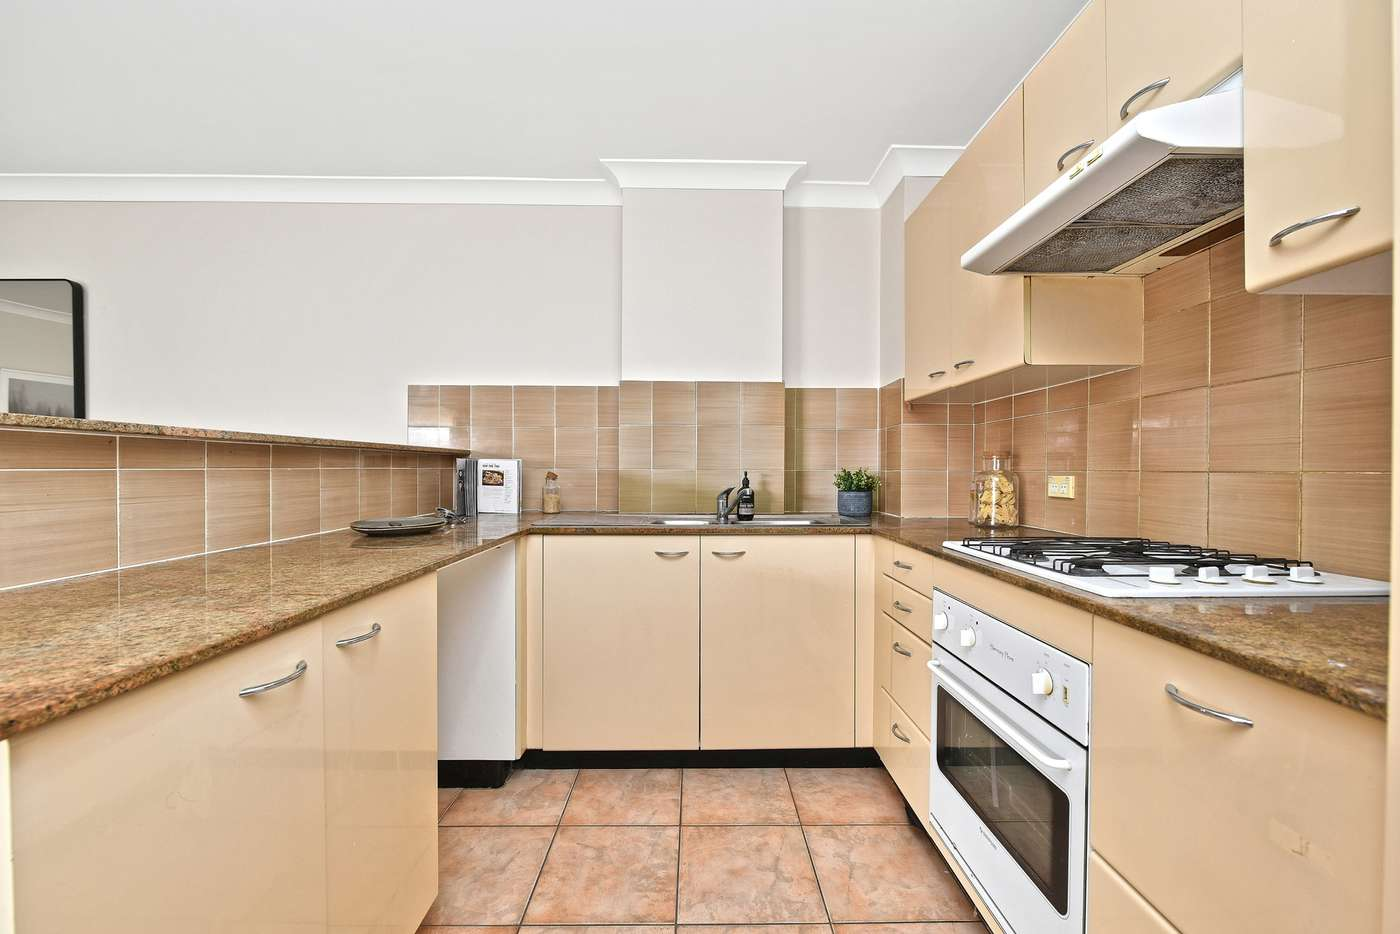 Sixth view of Homely apartment listing, 3A06/767 Anzac Parade, Maroubra NSW 2035